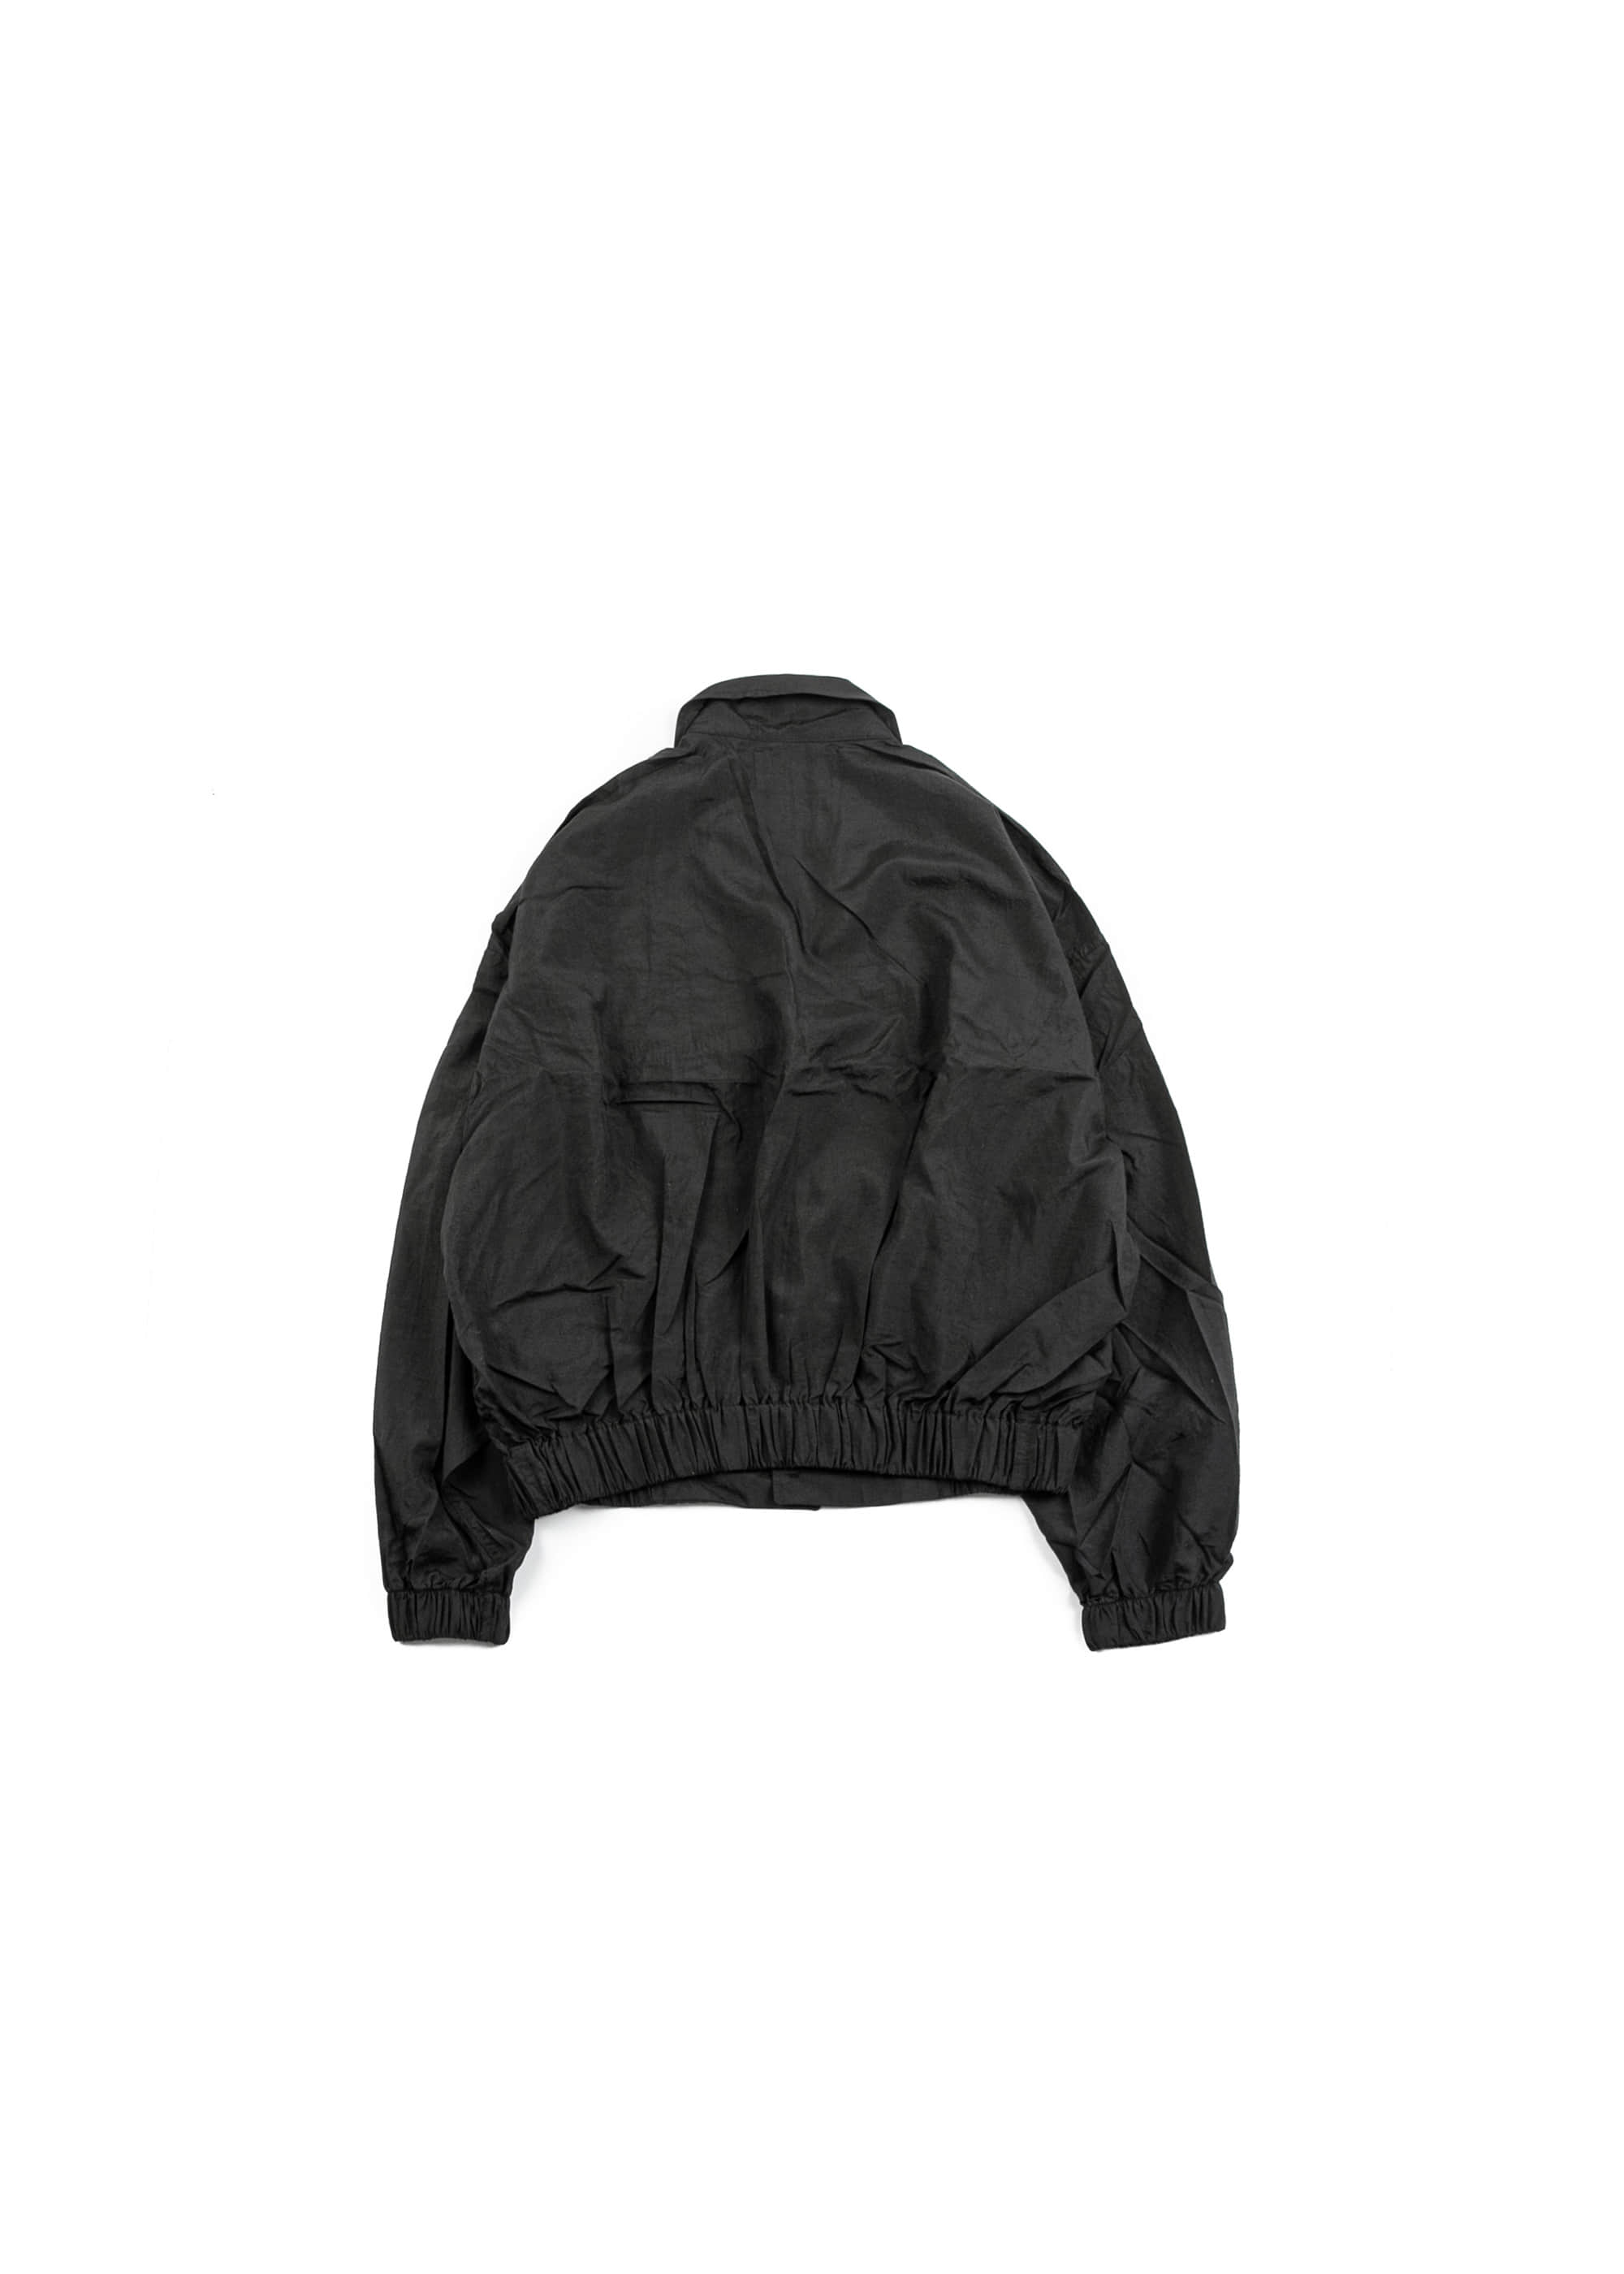 Taffeta Blouson Jacket - Black [ RE ]